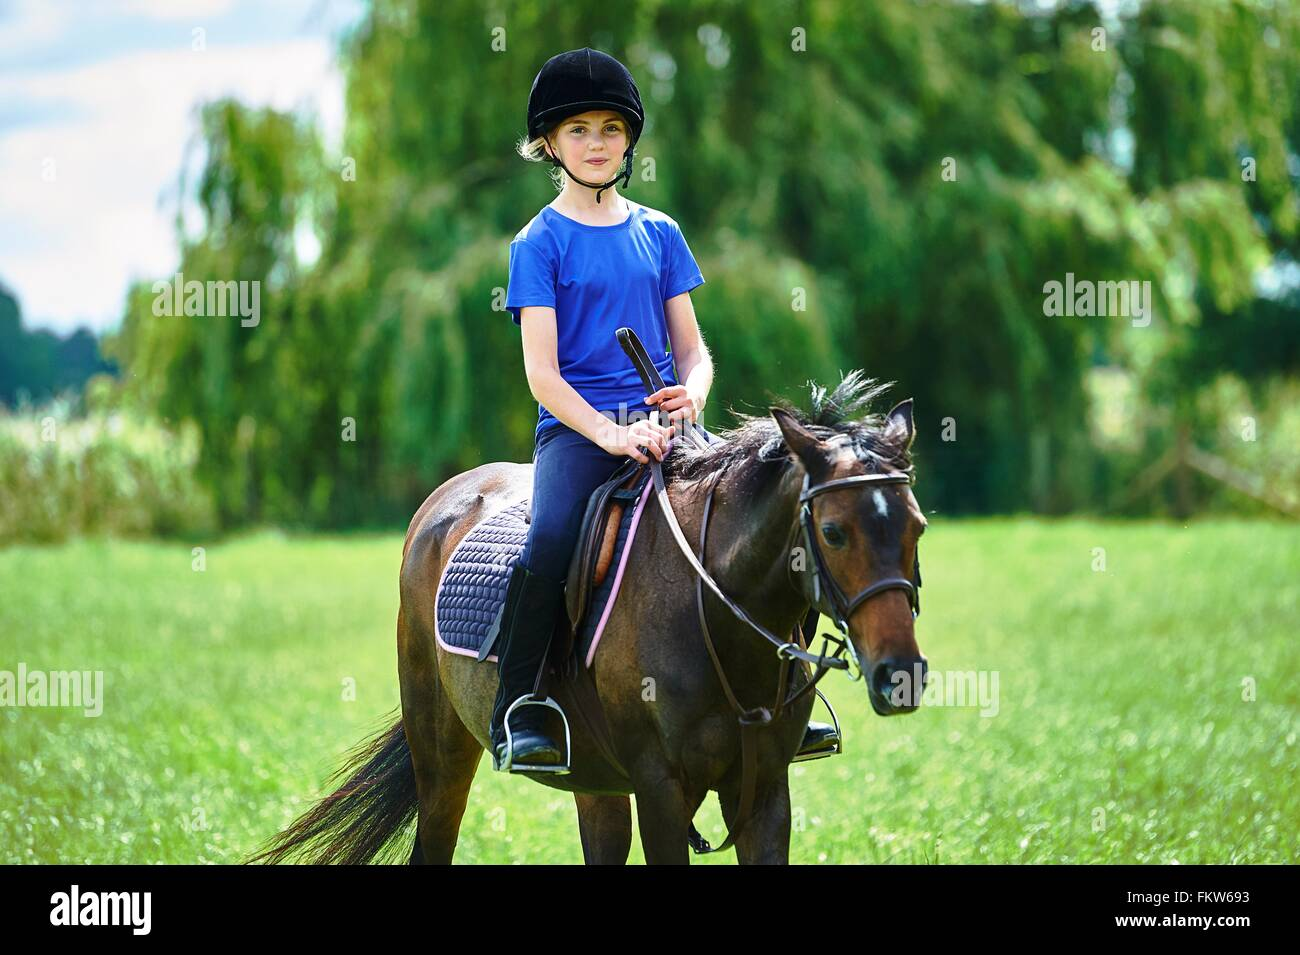 Front view of girl on horseback wearing riding hat looking at camera smiling - Stock Image